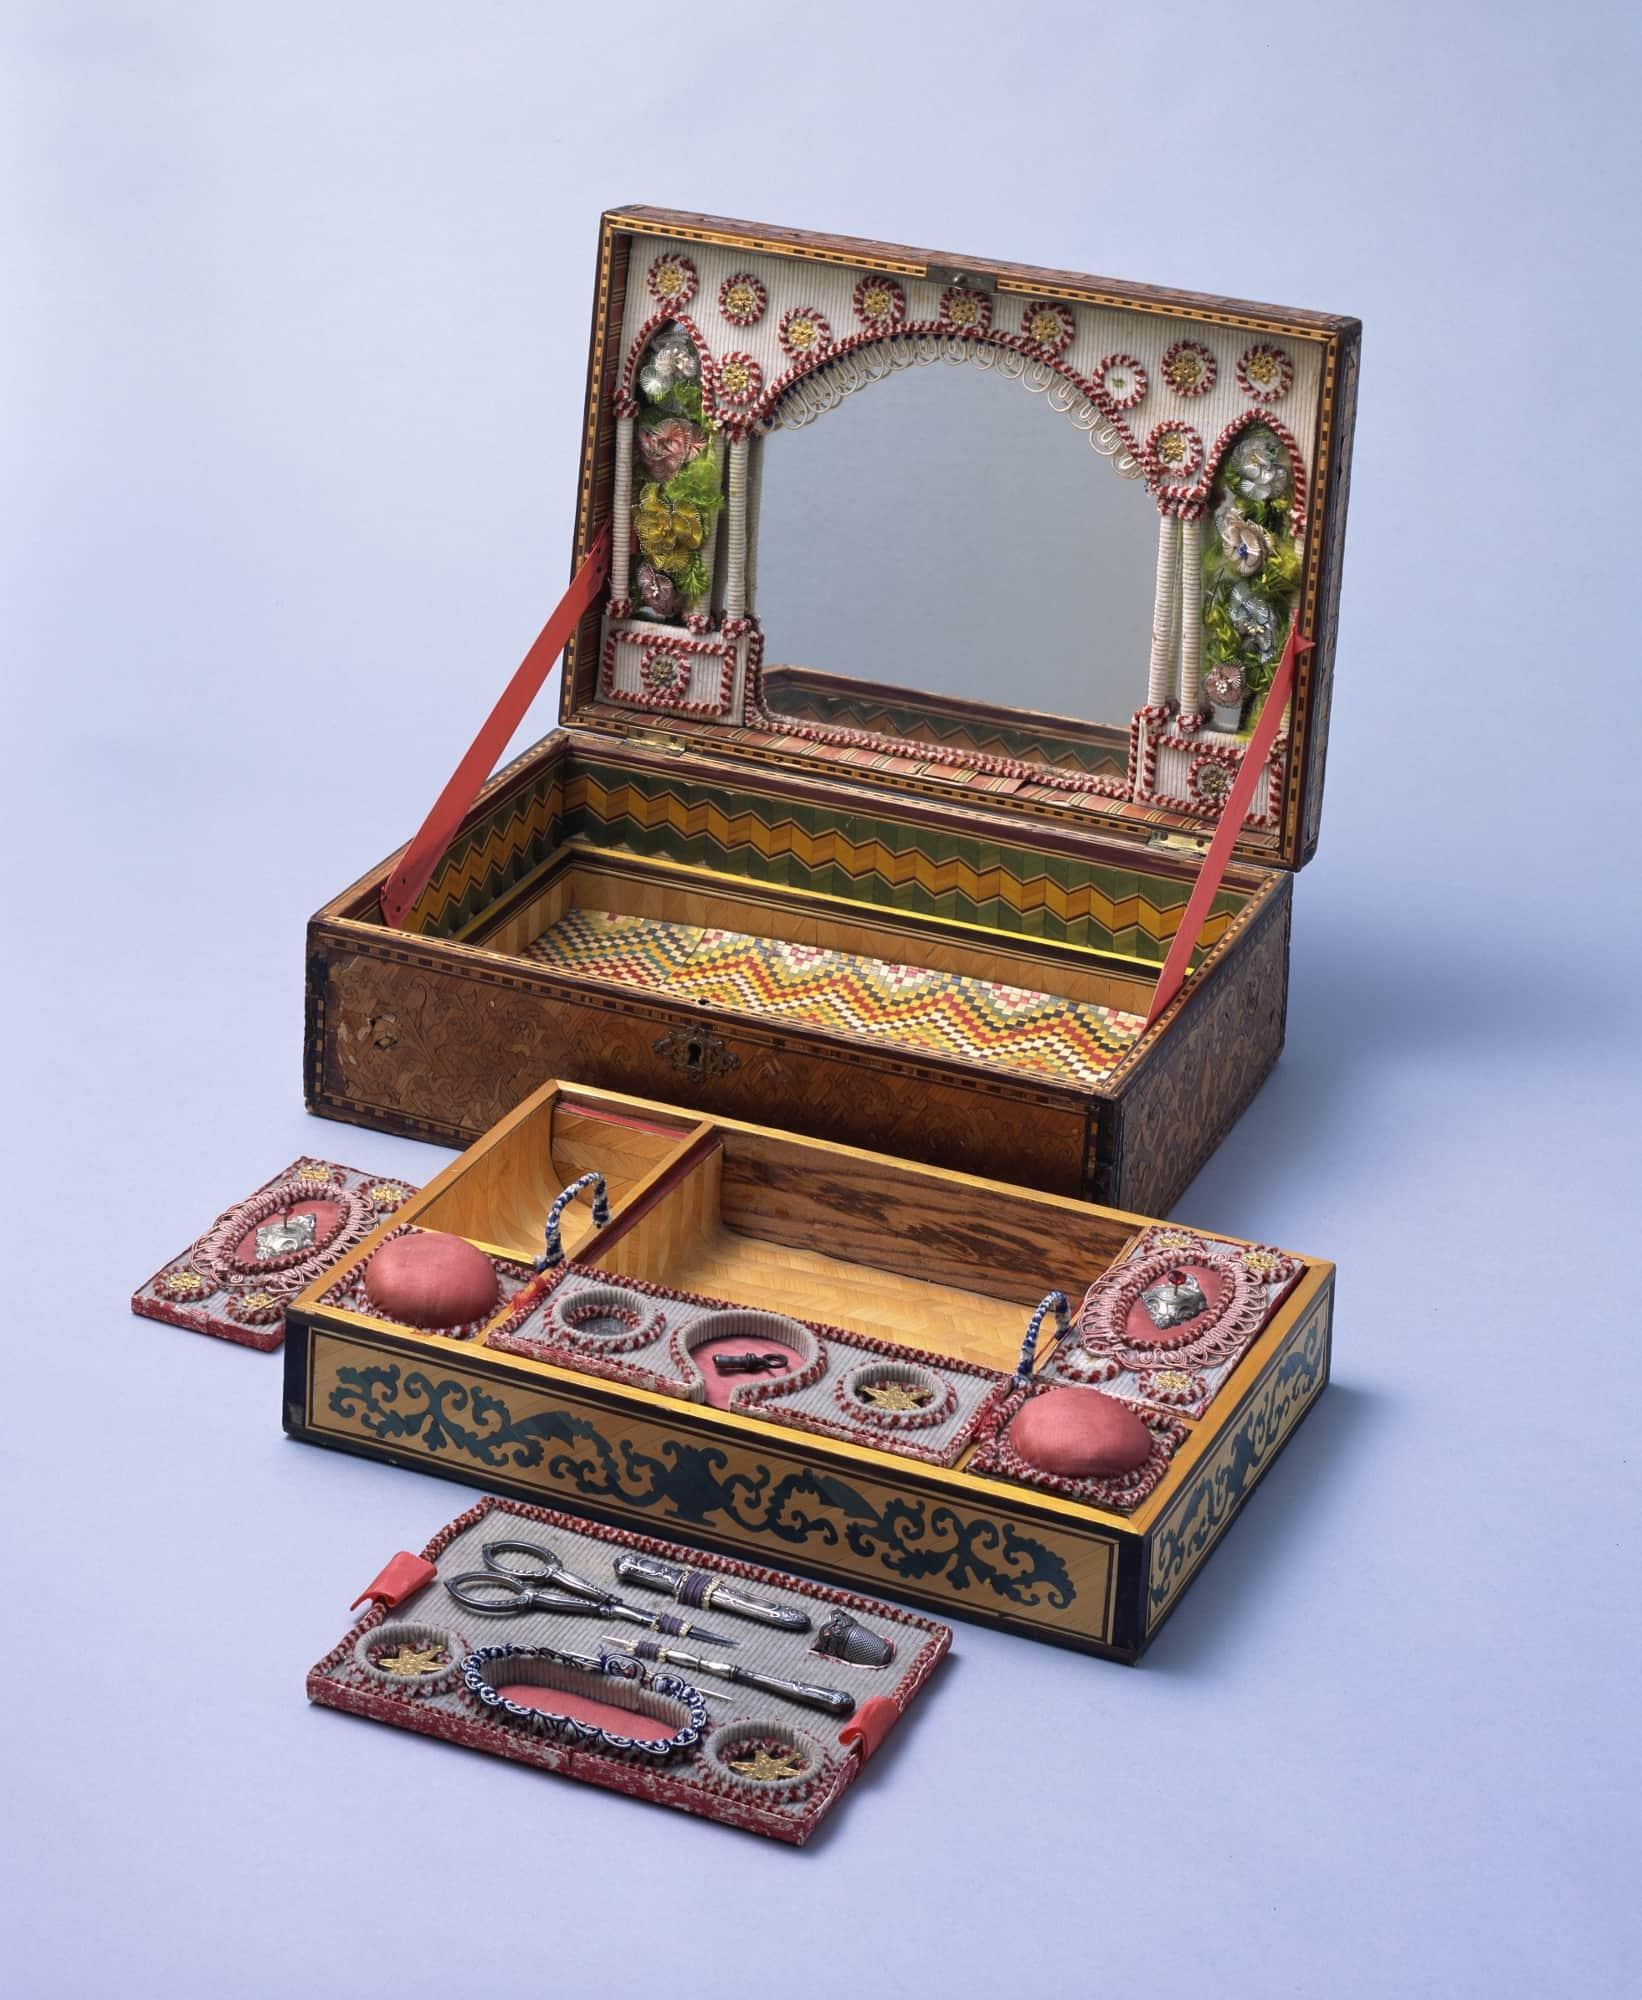 Late 1700s sewing box ©The Kyoto Costume Institute, photo by Takashi Hatakeyama